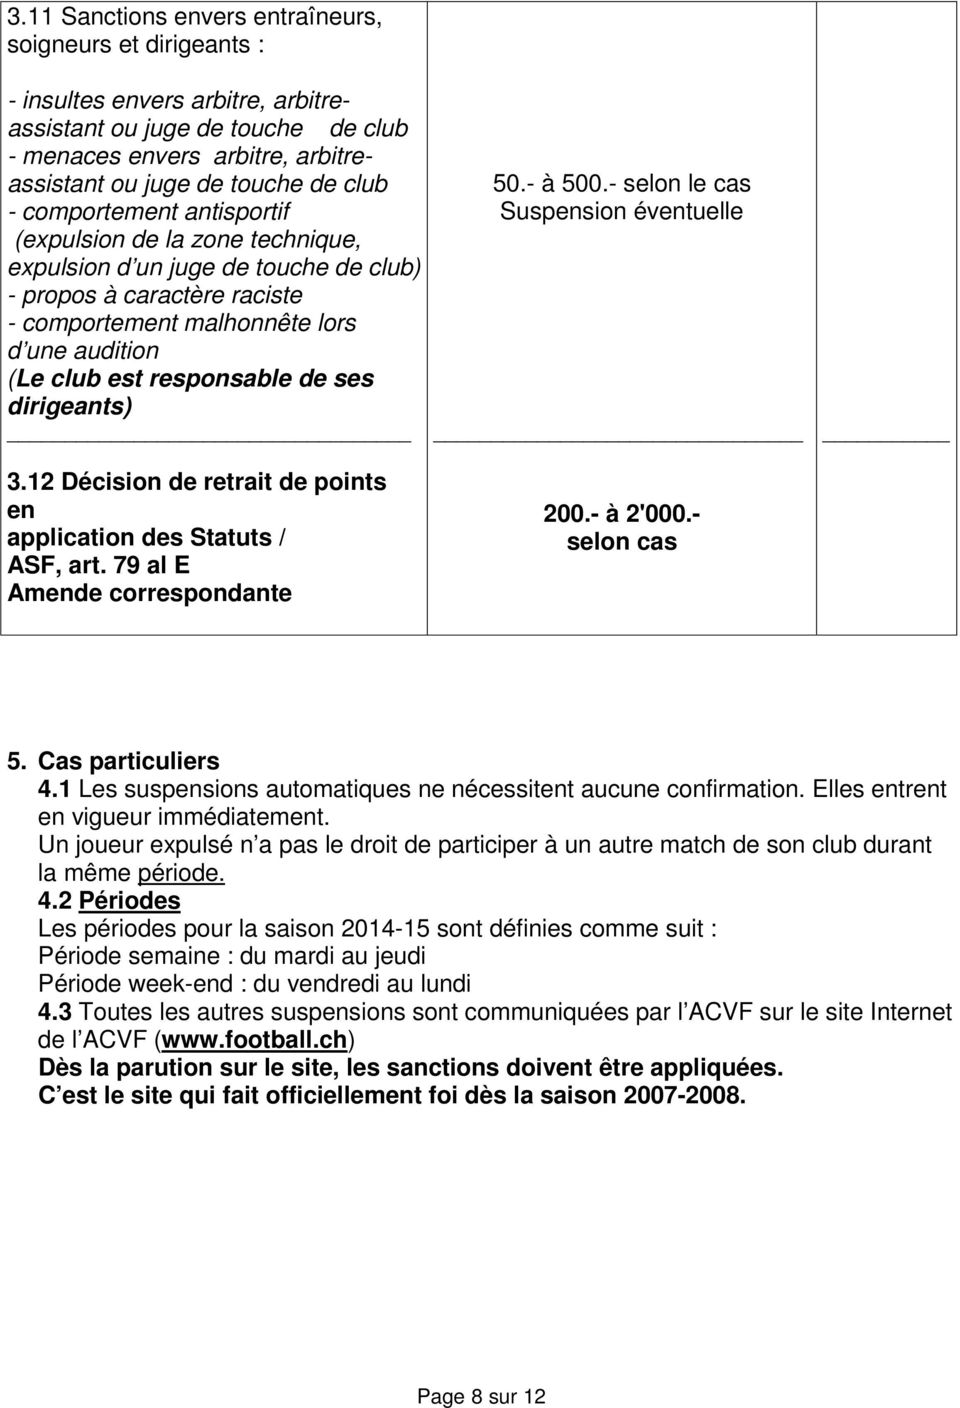 de ses dirigeants) 3.12 Décision de retrait de points en application des Statuts / ASF, art. 79 al E Amende correspondante 50.- à 500.- selon le cas Suspension éventuelle 200.- à 2'000.- selon cas 5.